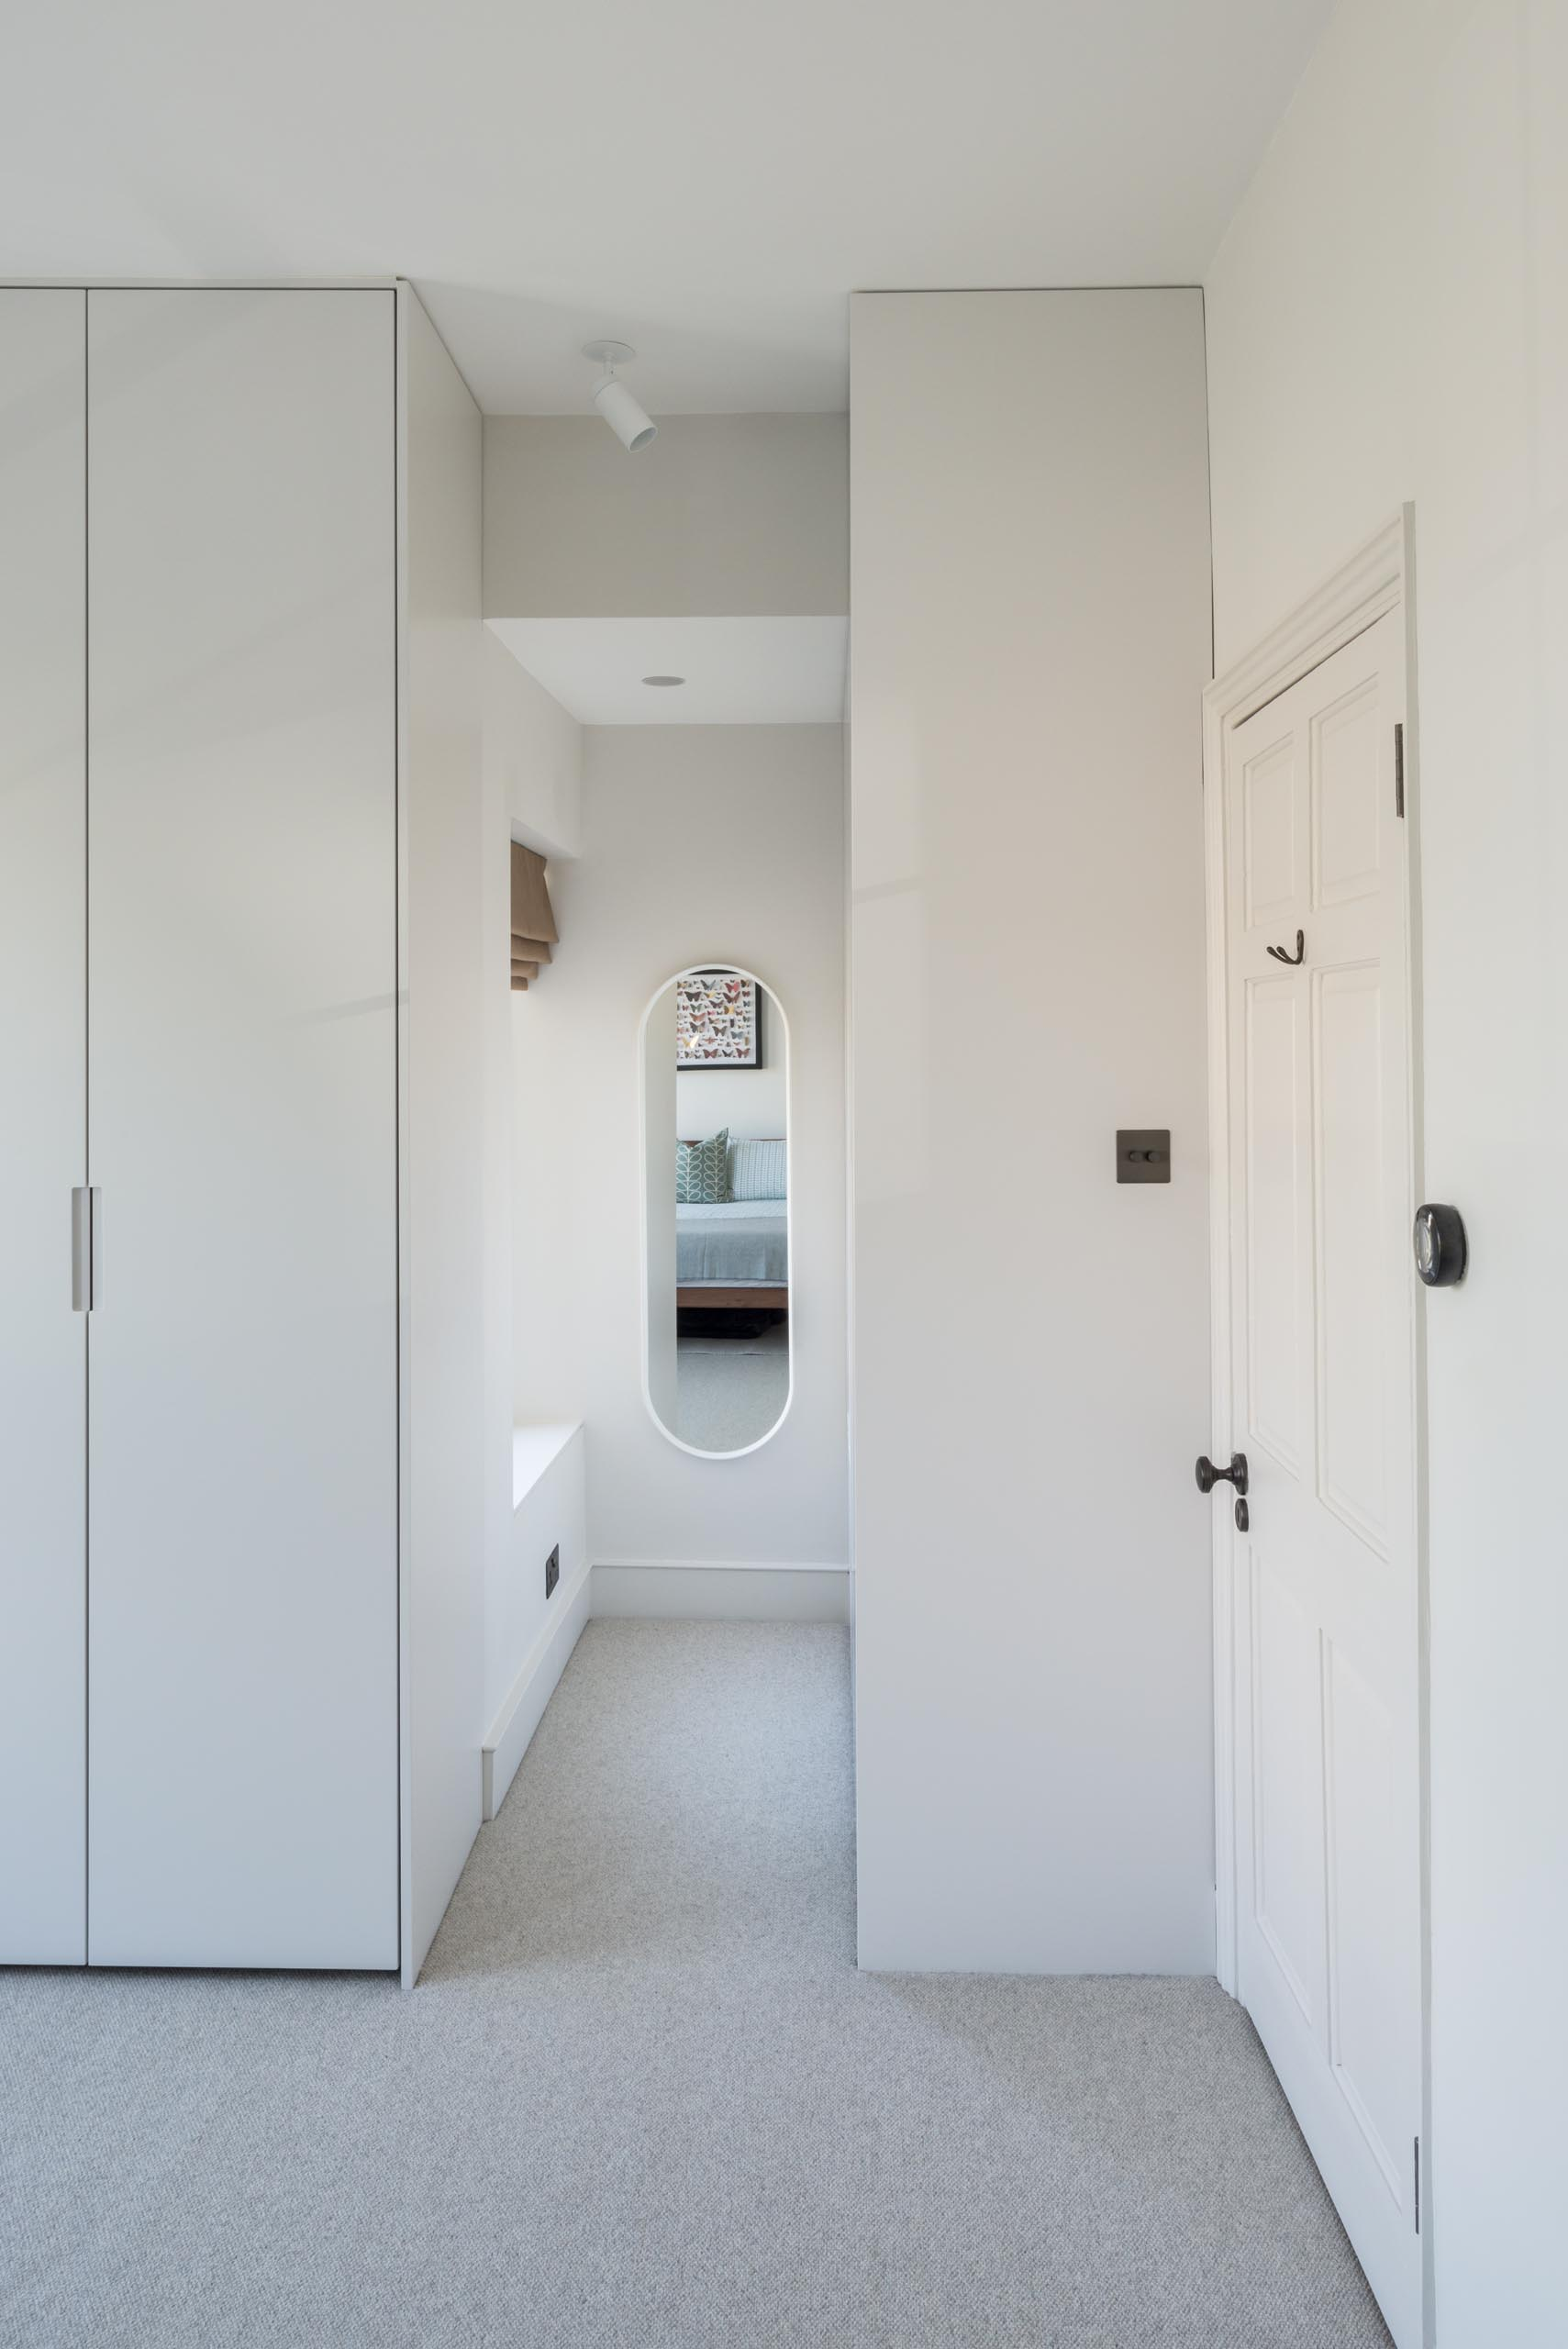 A modern walk-in closet with wood cabinets and a pill-shaped mirror.